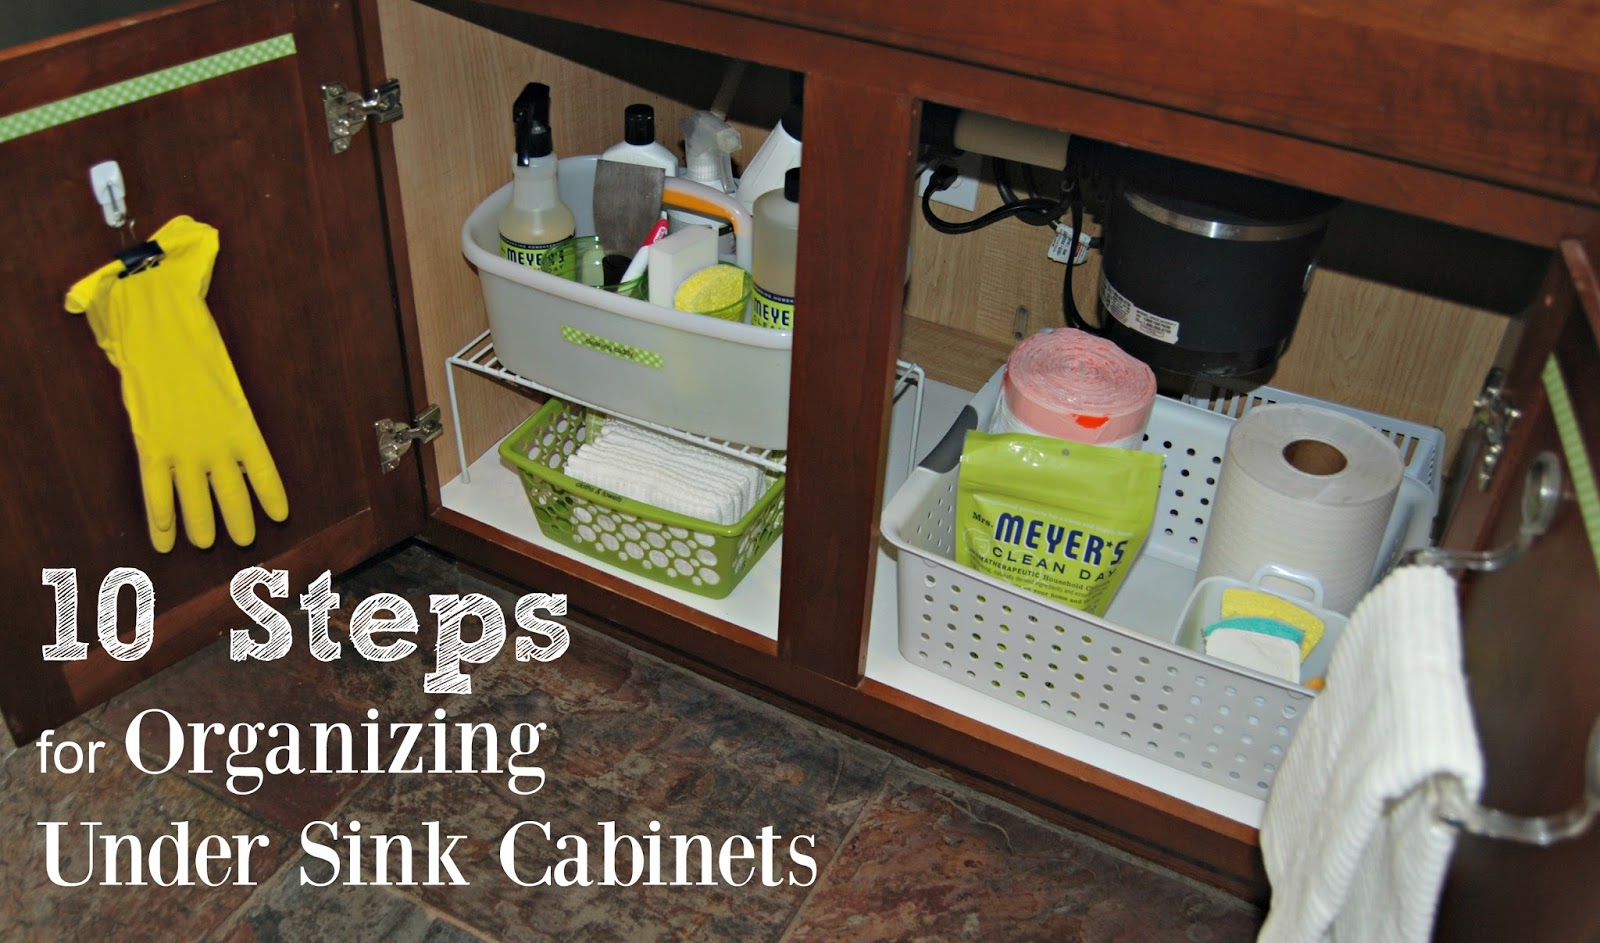 10 steps for organizing under sink cabinets sink kitchen cabinets How to Organize the Under Sink Kitchen Cabinets